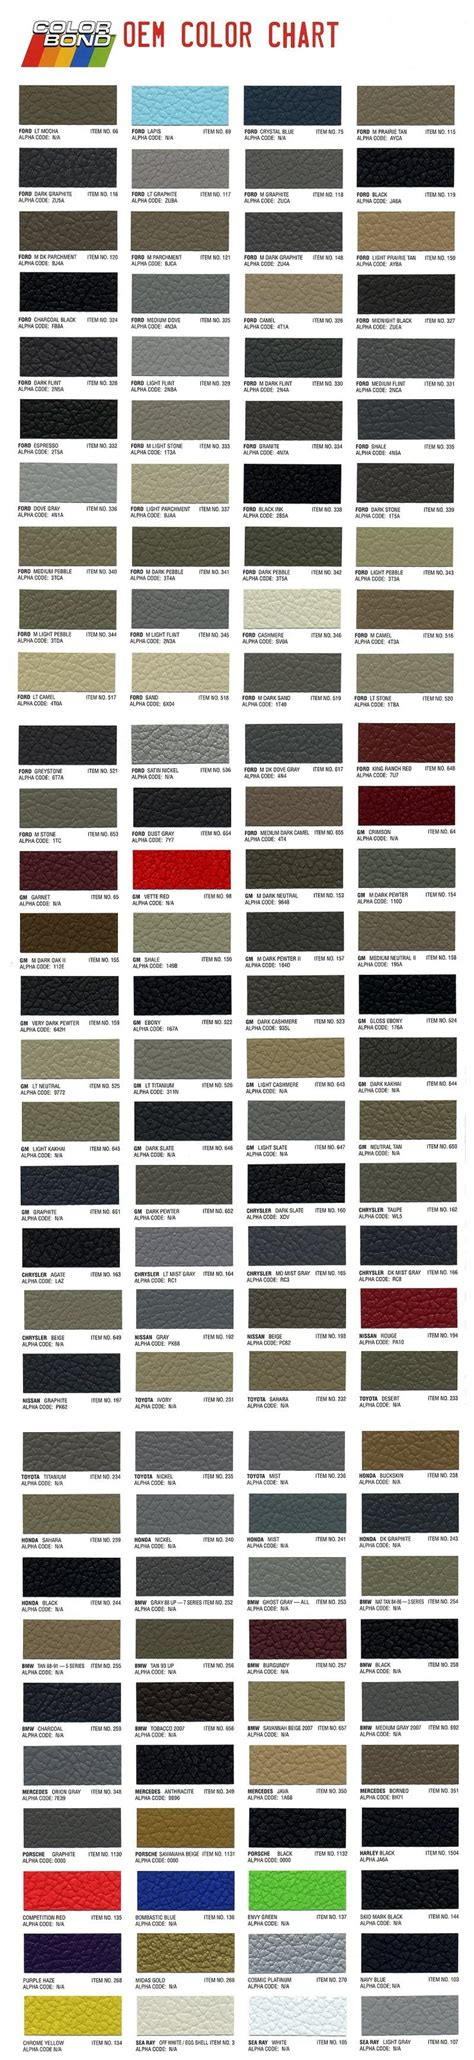 colorbond classic color product line for the boat